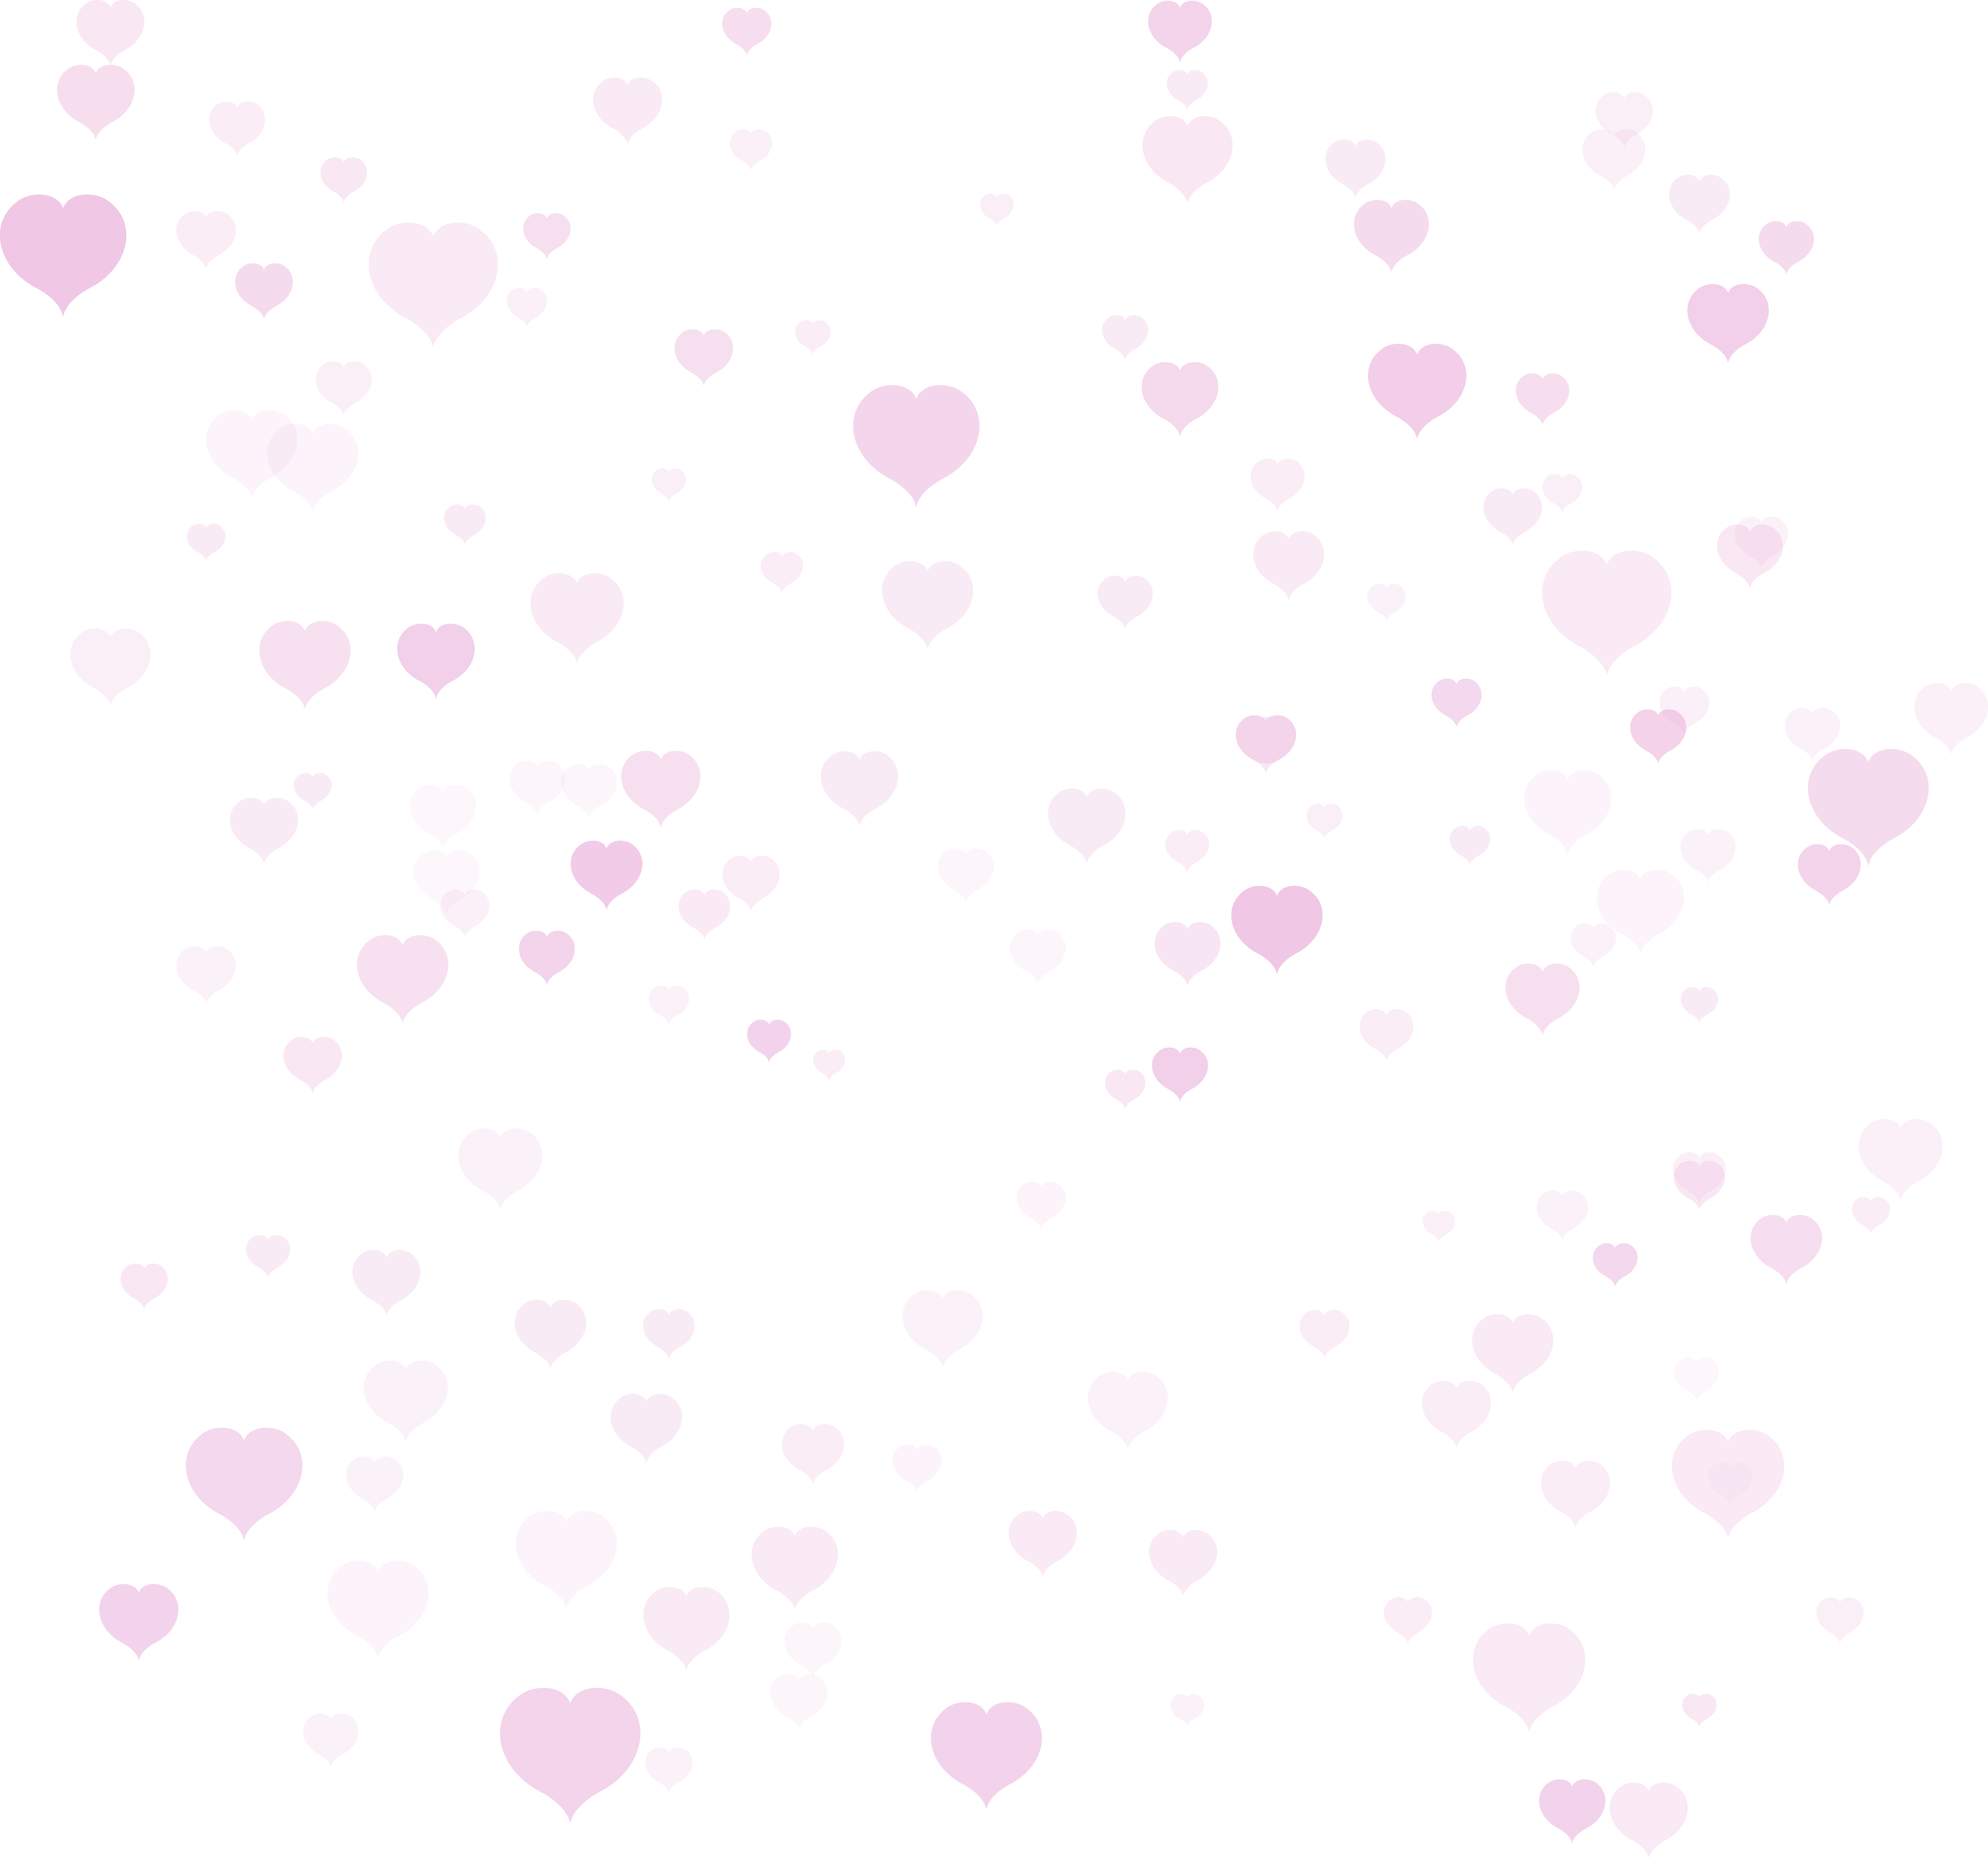 Heart background png. Hearts for transparent clip